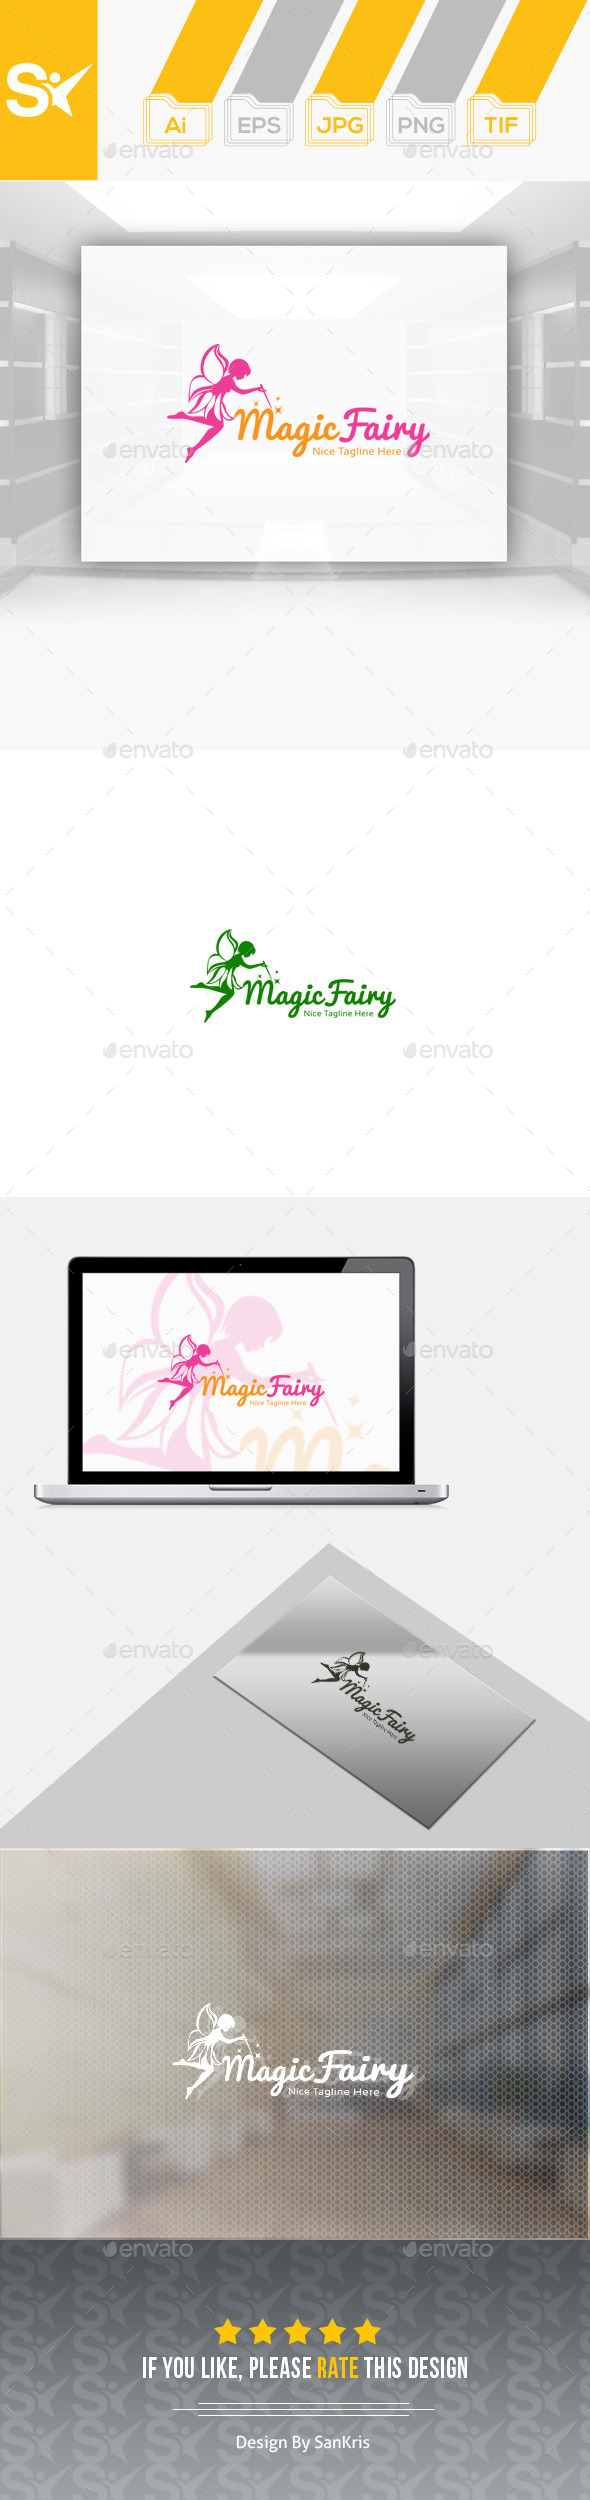 Magic Fairy Logo - Nature Logo Templates